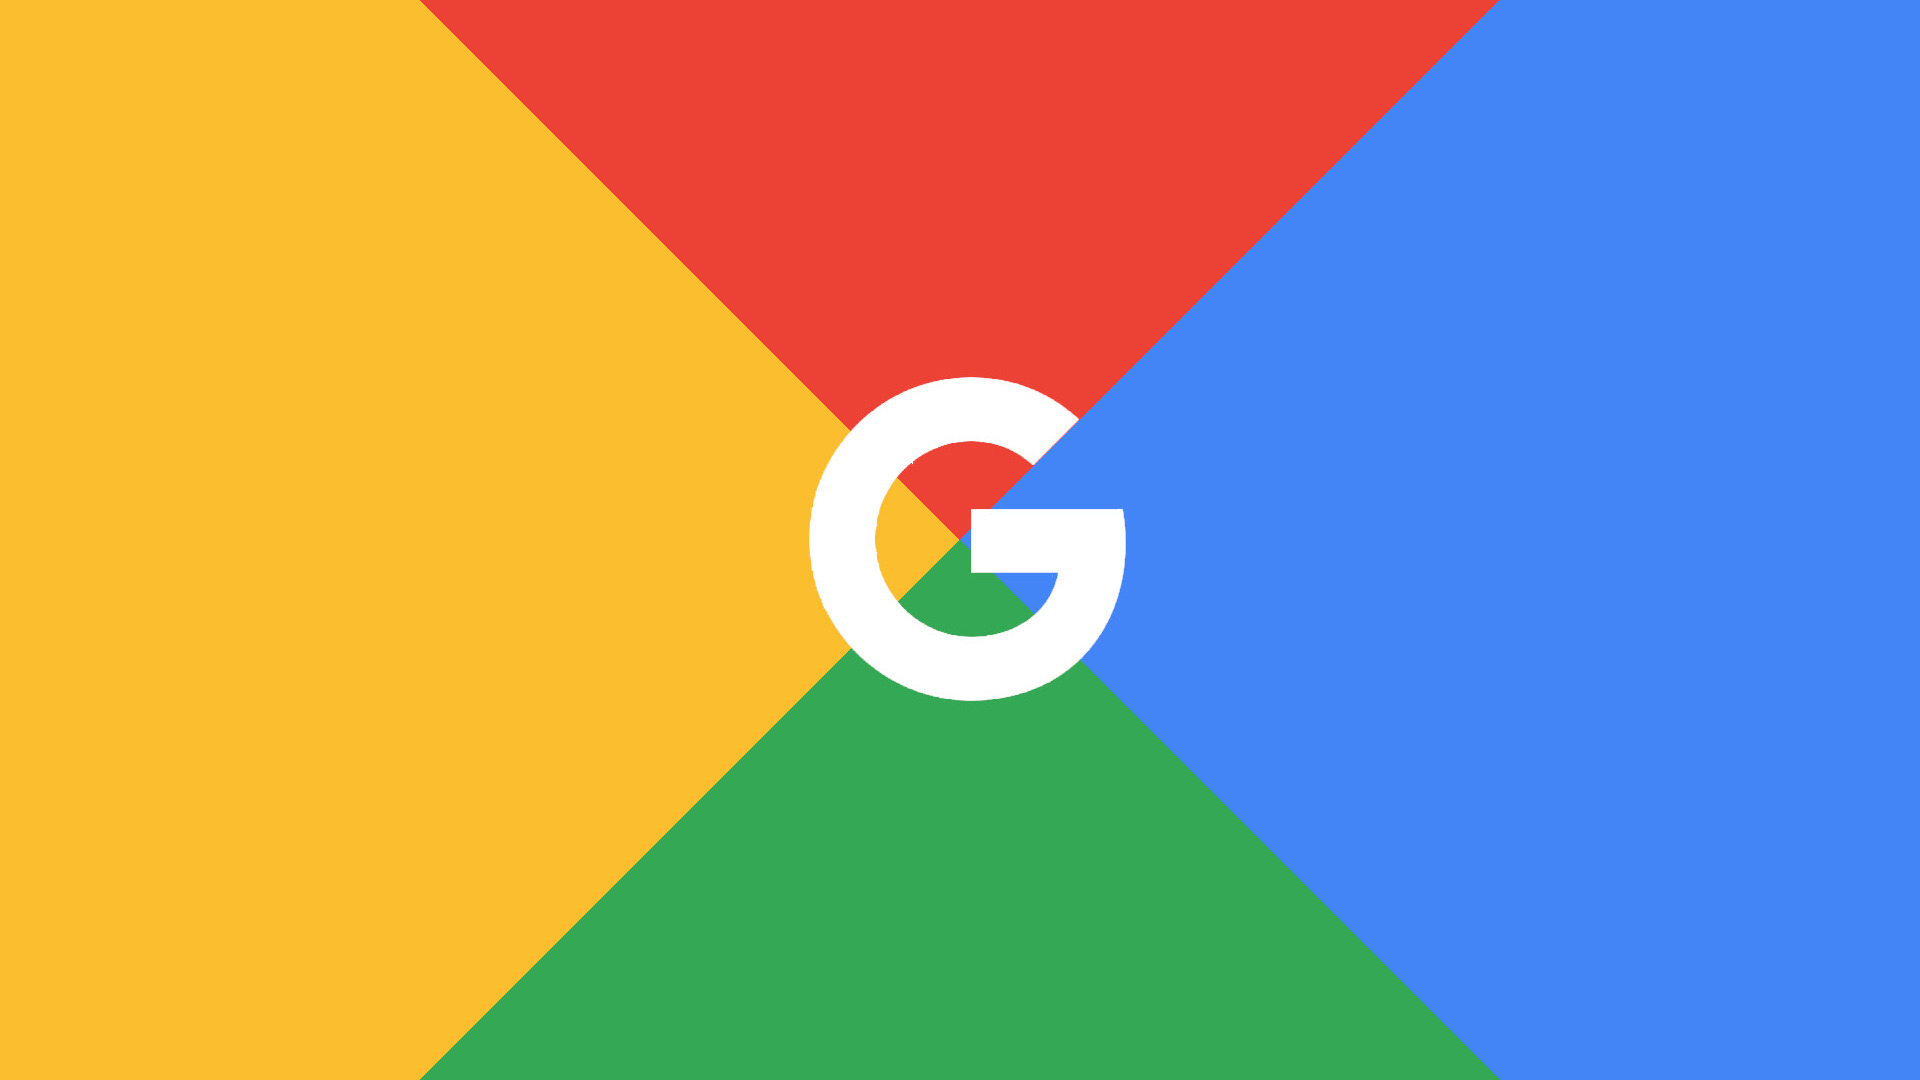 Feeling curious? 3D Touch the updated Google app's icon now